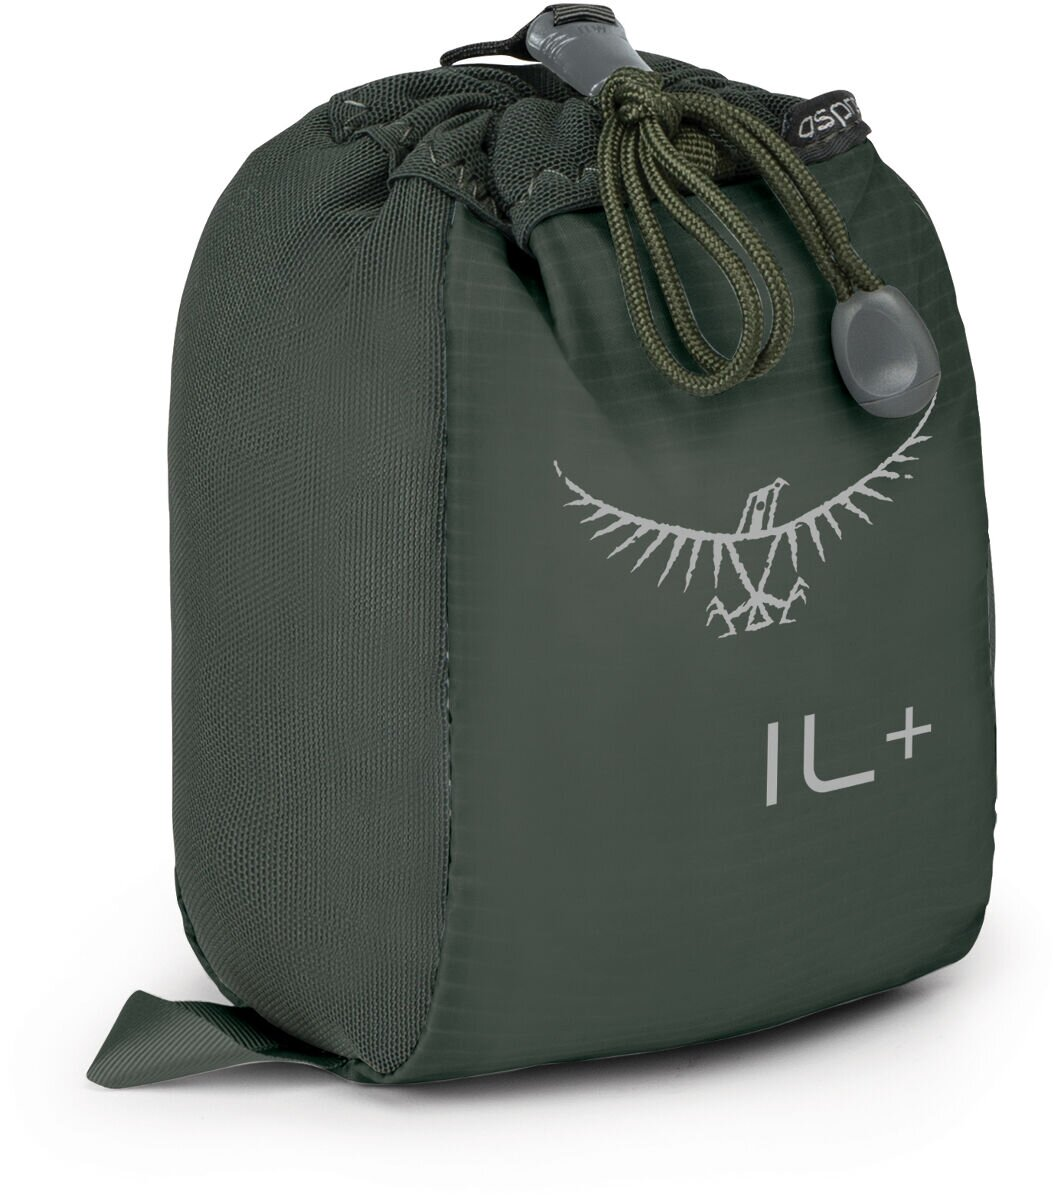 Компрессионный мешок Osprey - Ultralight Stretch Stuff Sack 1+ 2017, SHADOW Grey, (009.1547)